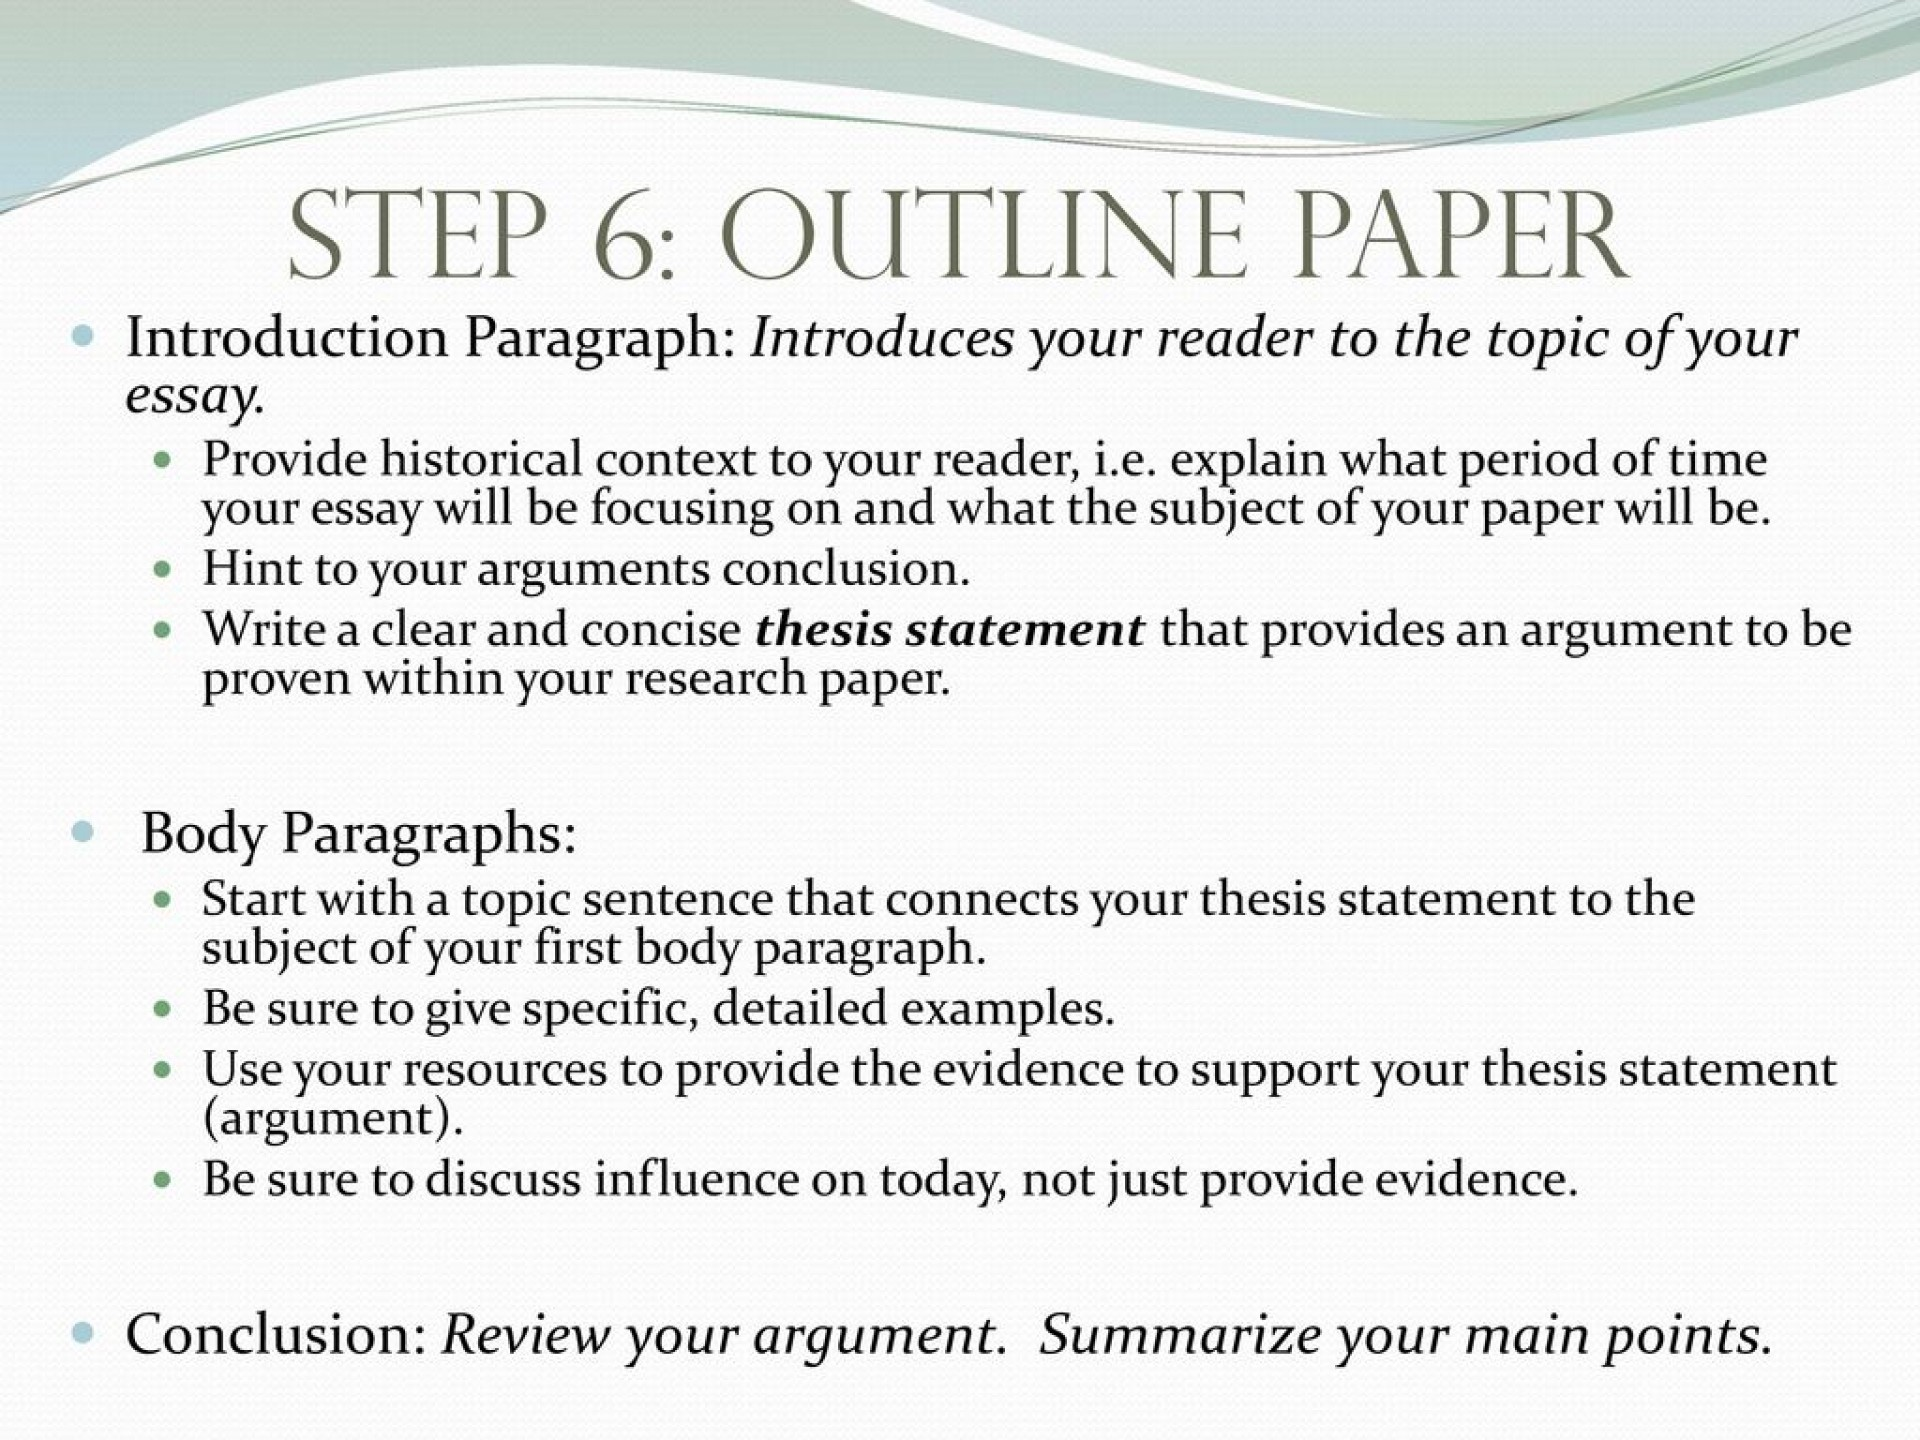 018 Step63aoutlinepaperintroductionparagraph3aintroducesyourreadertothetopicofyouressay Research Paper How To Start The Intro Of Singular A Examples Structure Introduction 1920